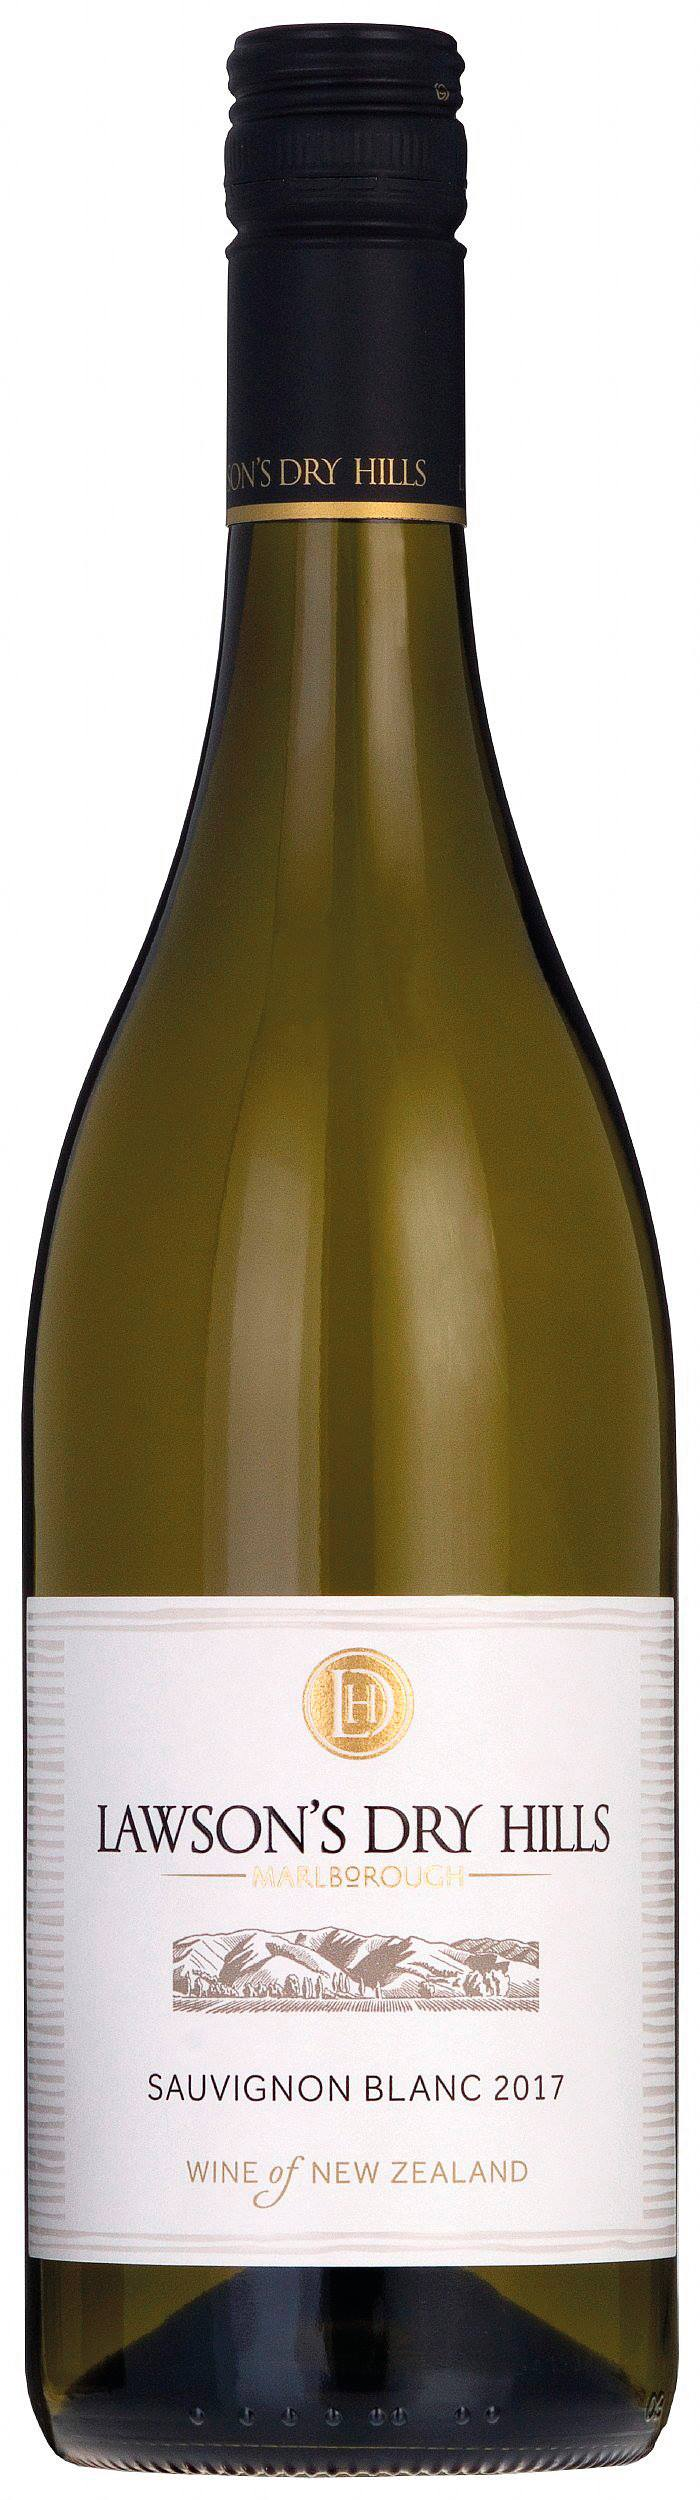 Lawson's Dry Hills – Sauvignon Blanc 2017 – Marlborough, New Zealand